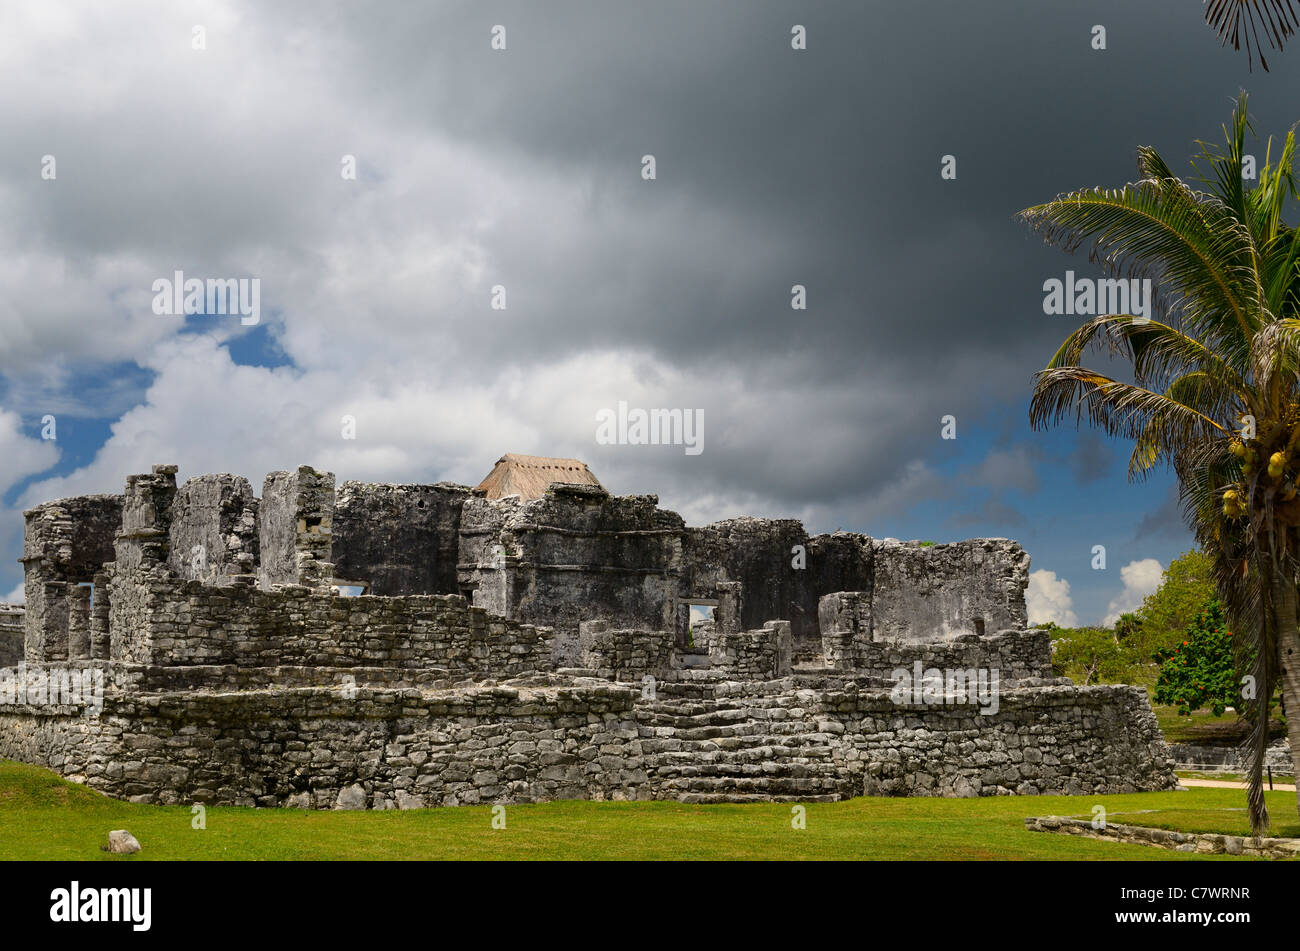 Temple of the Descending God at Tulum Mexico with storm cloud and coconut palm tree - Stock Image